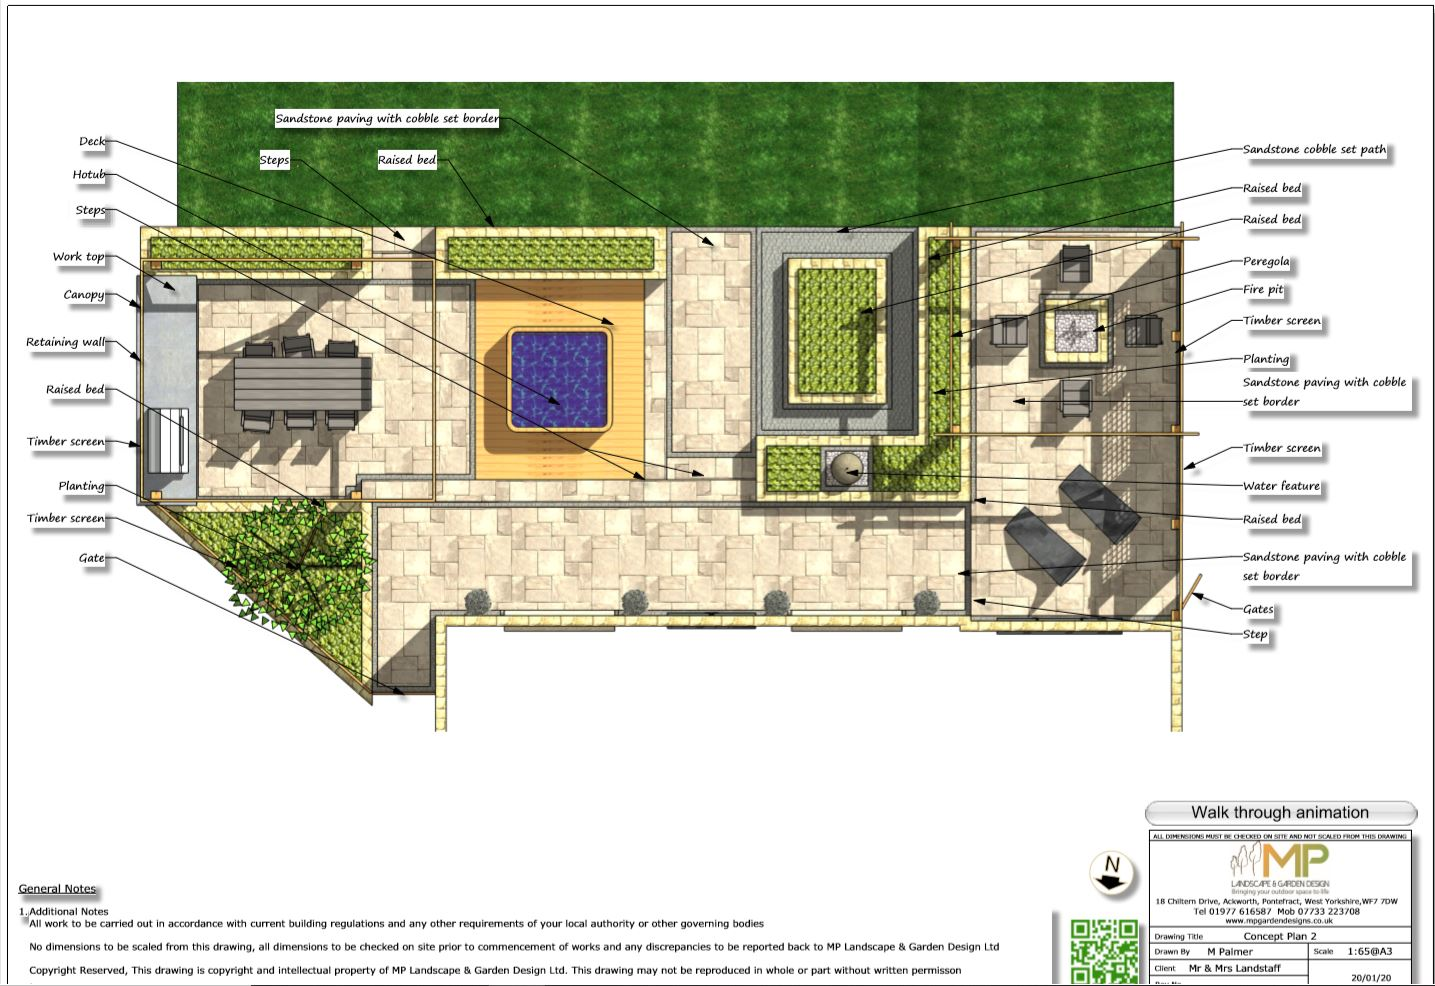 4. Colour concept-2 plan for a rear patio area in Wakefield